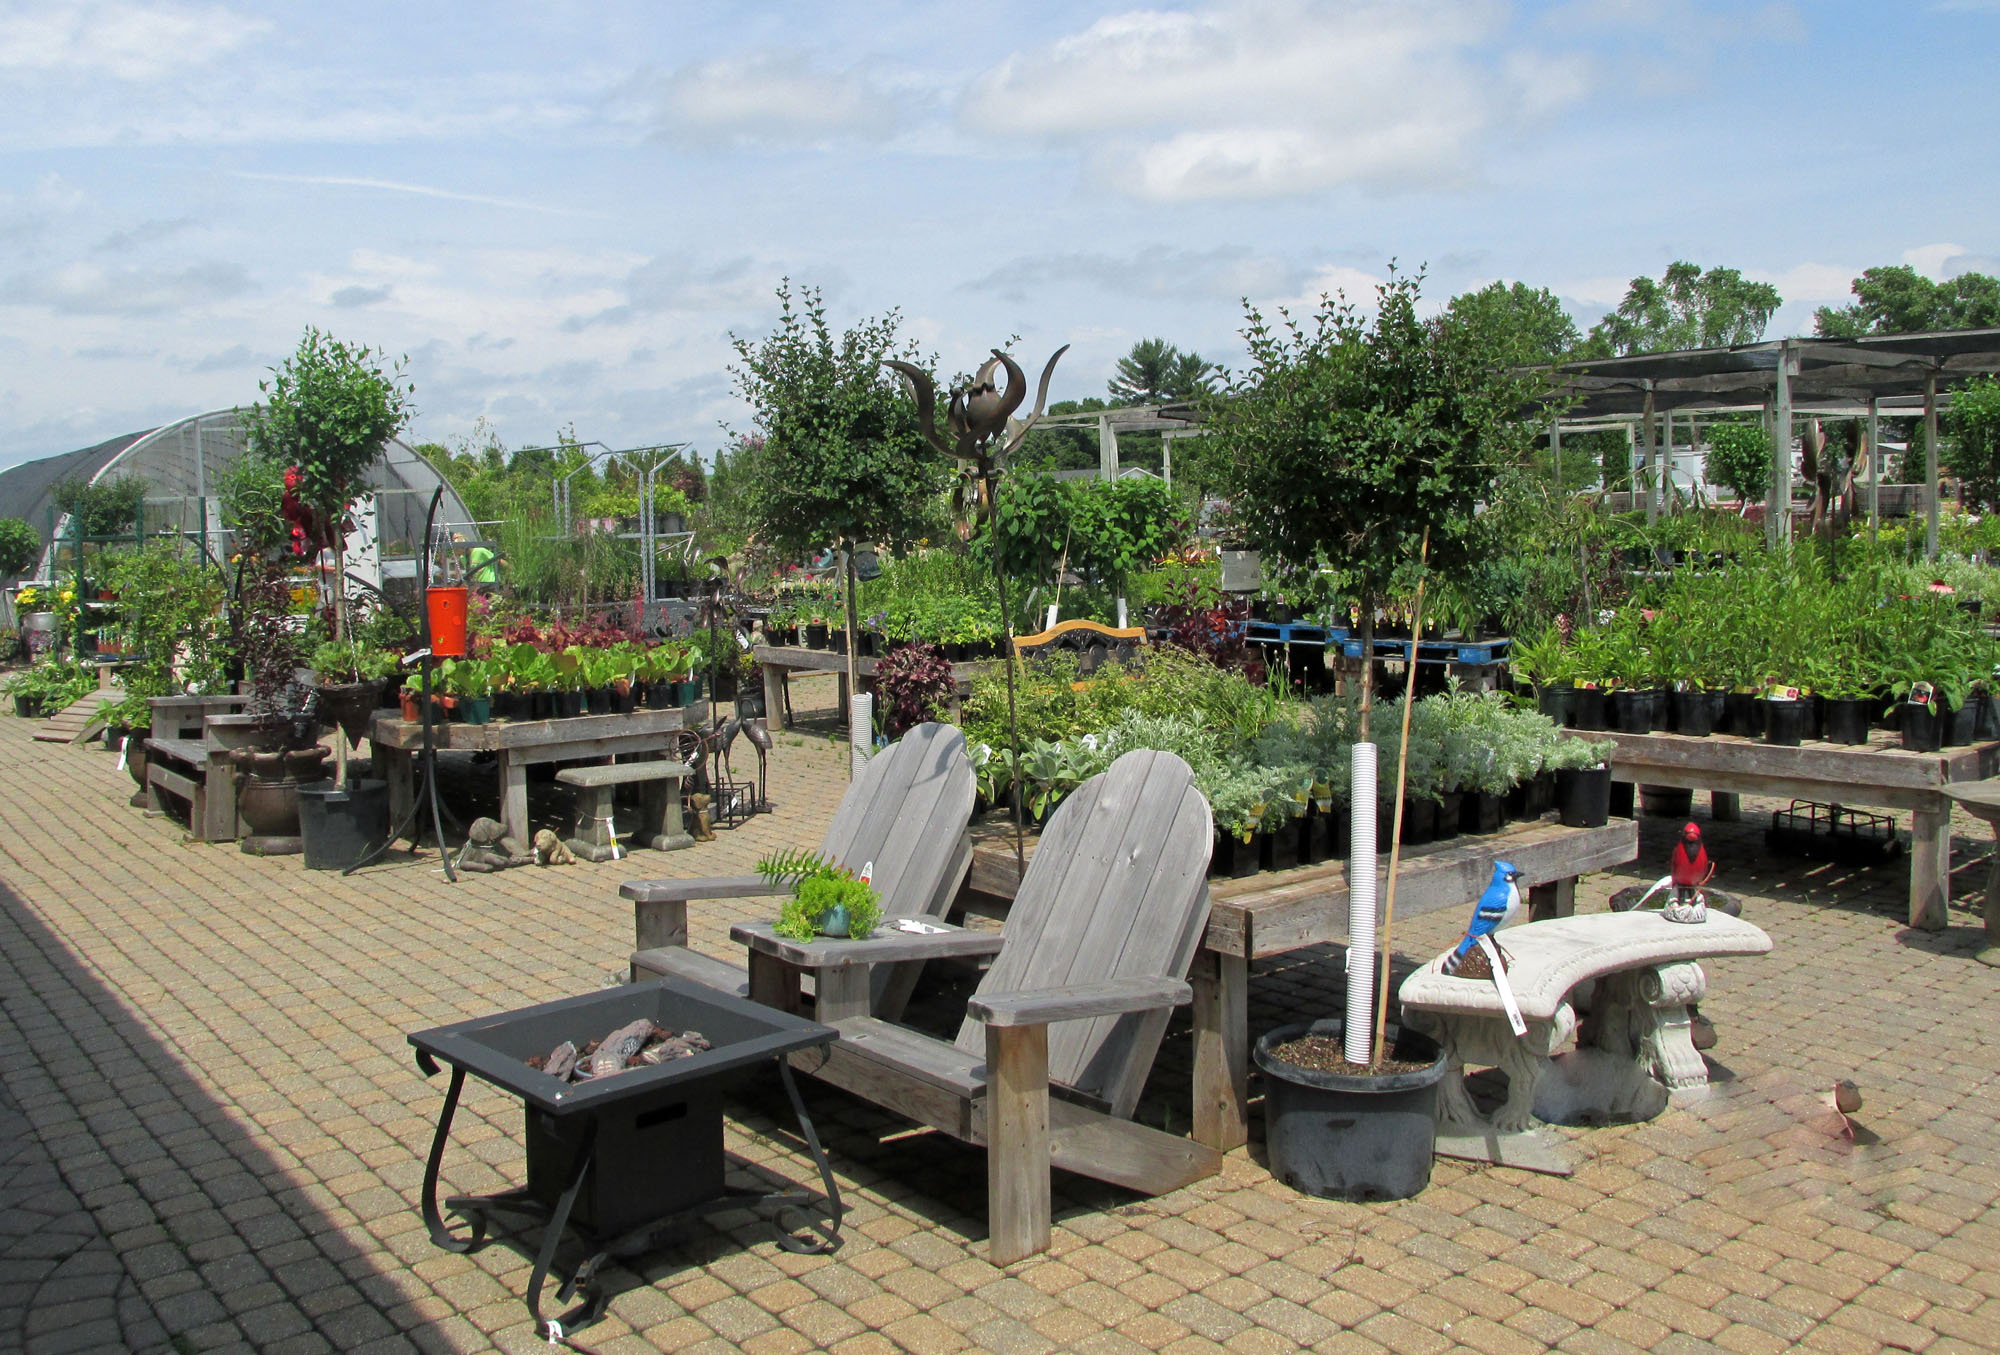 Prestige landscaping and garden center wisconsin travel guide prestige lawn garden center wisconsin 1 solutioingenieria